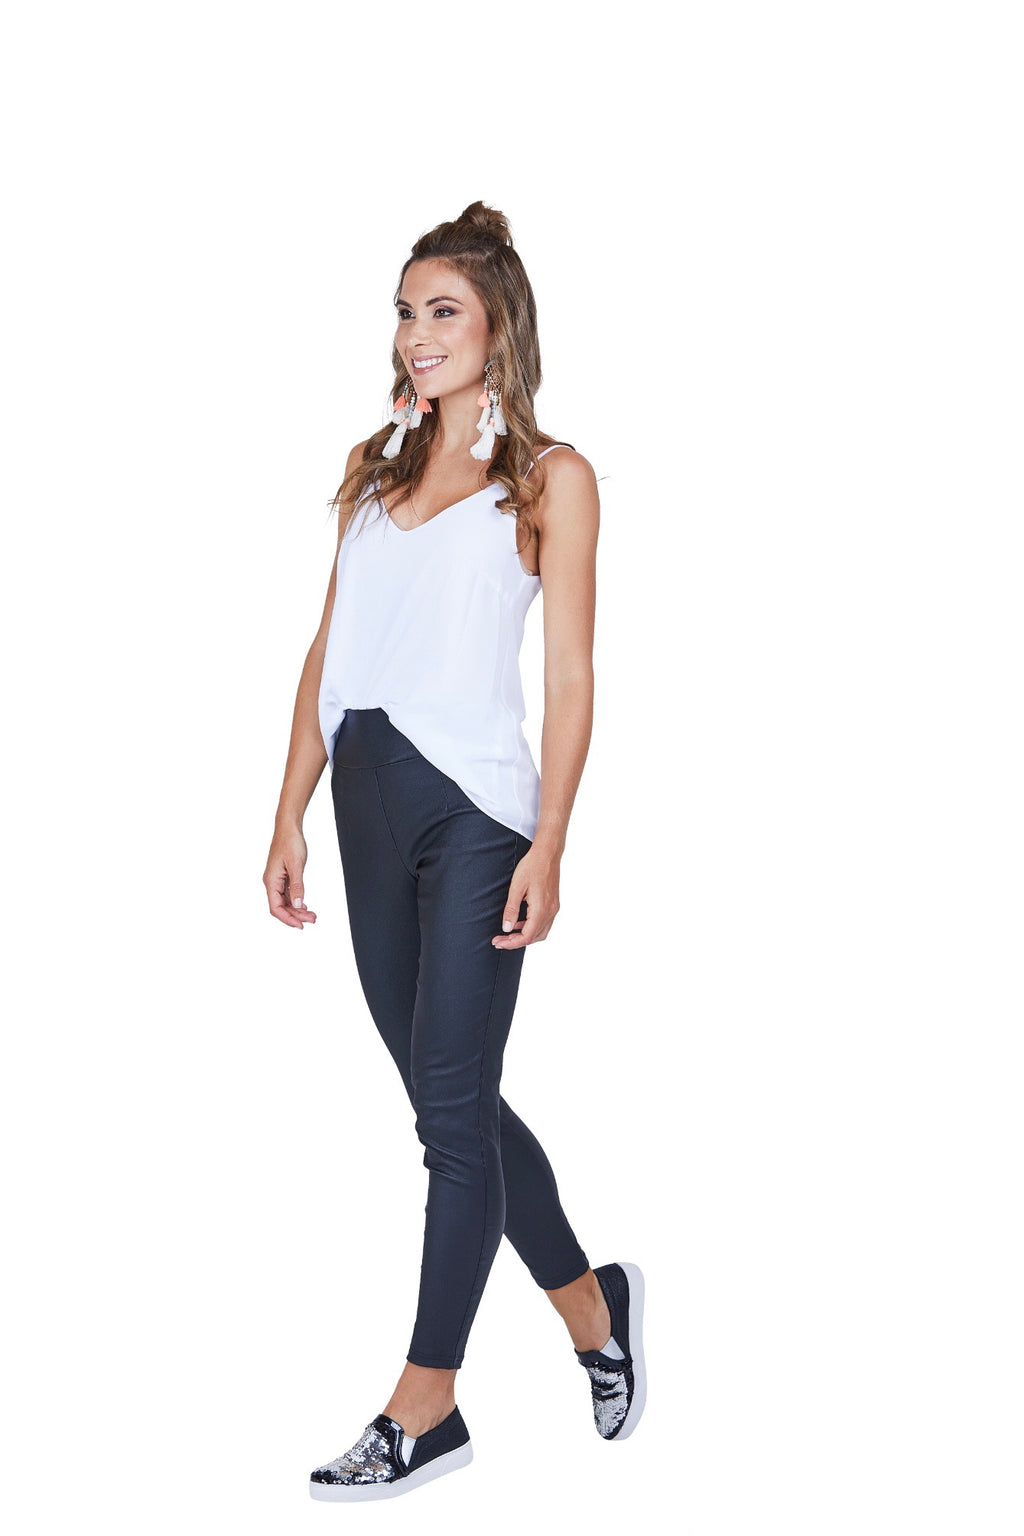 PRETTY BASIC - Sandy Pant Black